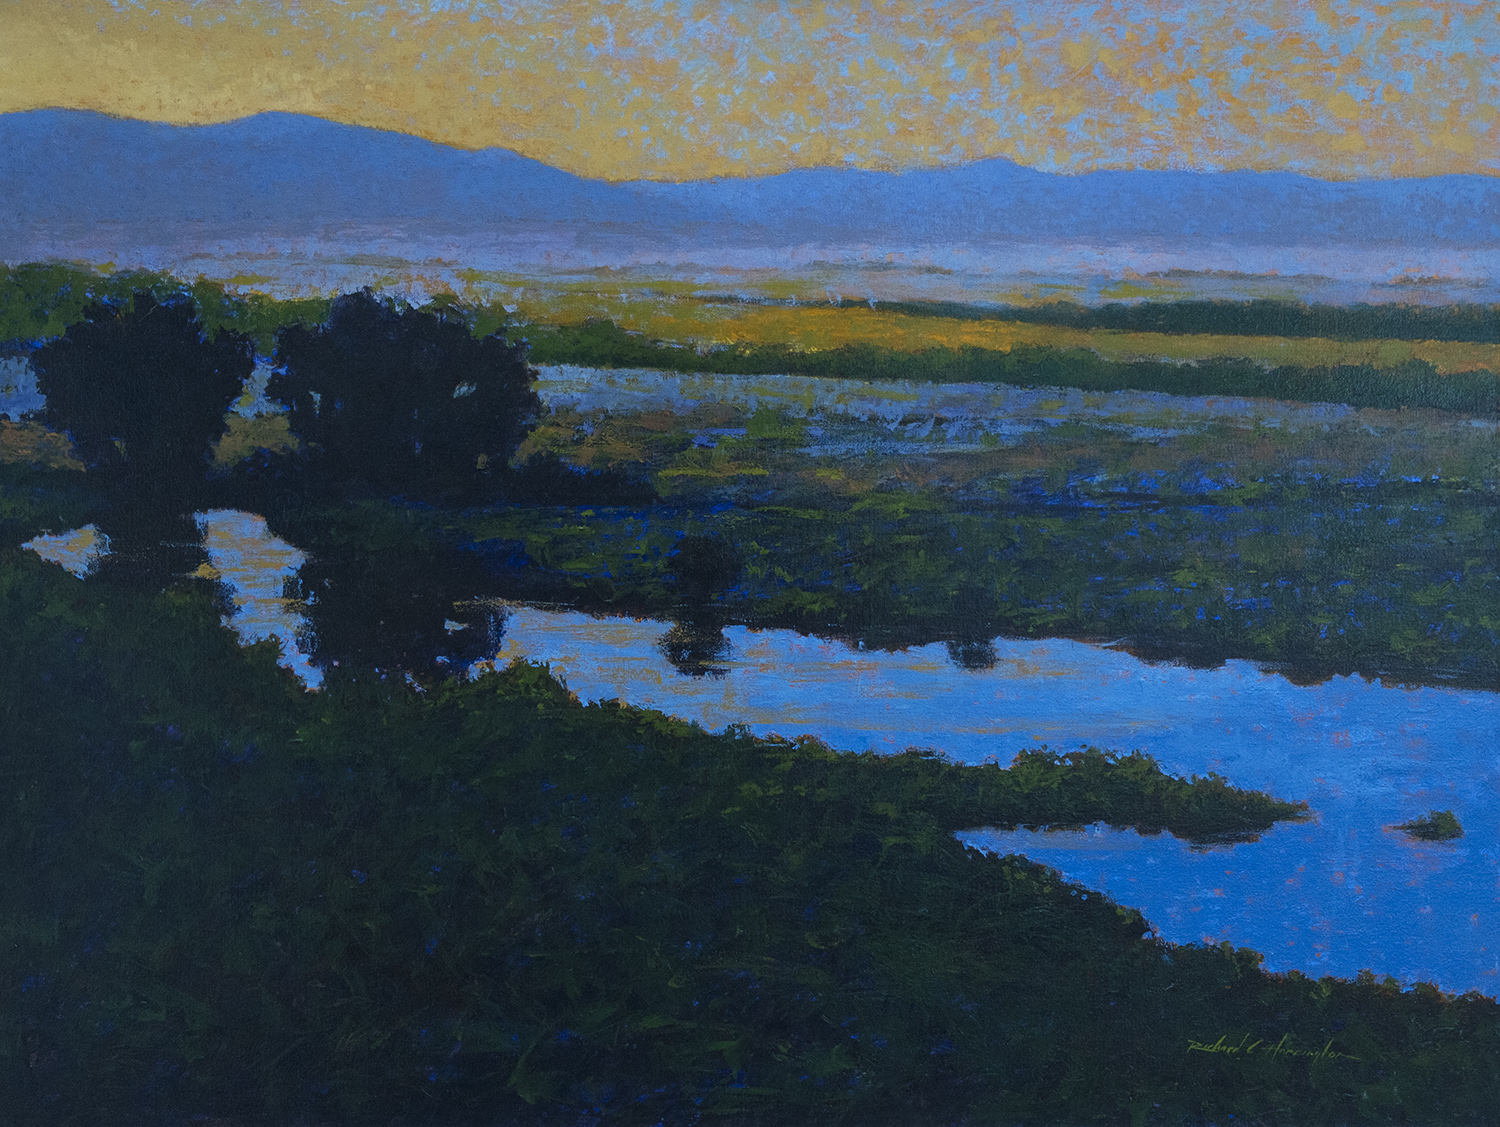 Silver Creek V, 42 x 56 inches, oil on canvas.Available through the artist.